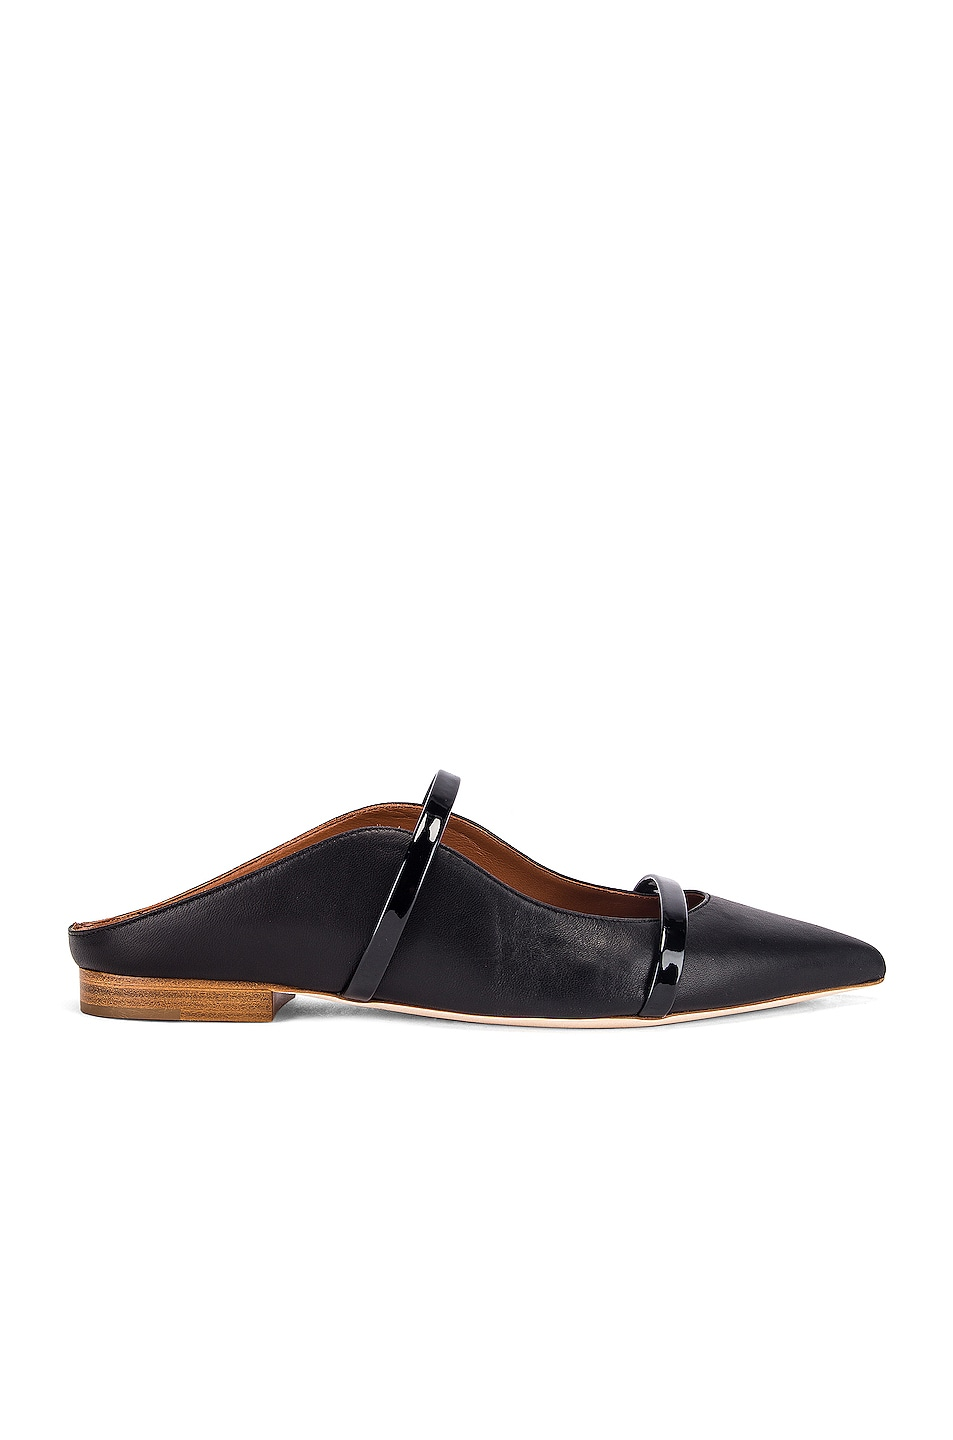 Image 1 of Malone Souliers Maureen MS Flat in Black